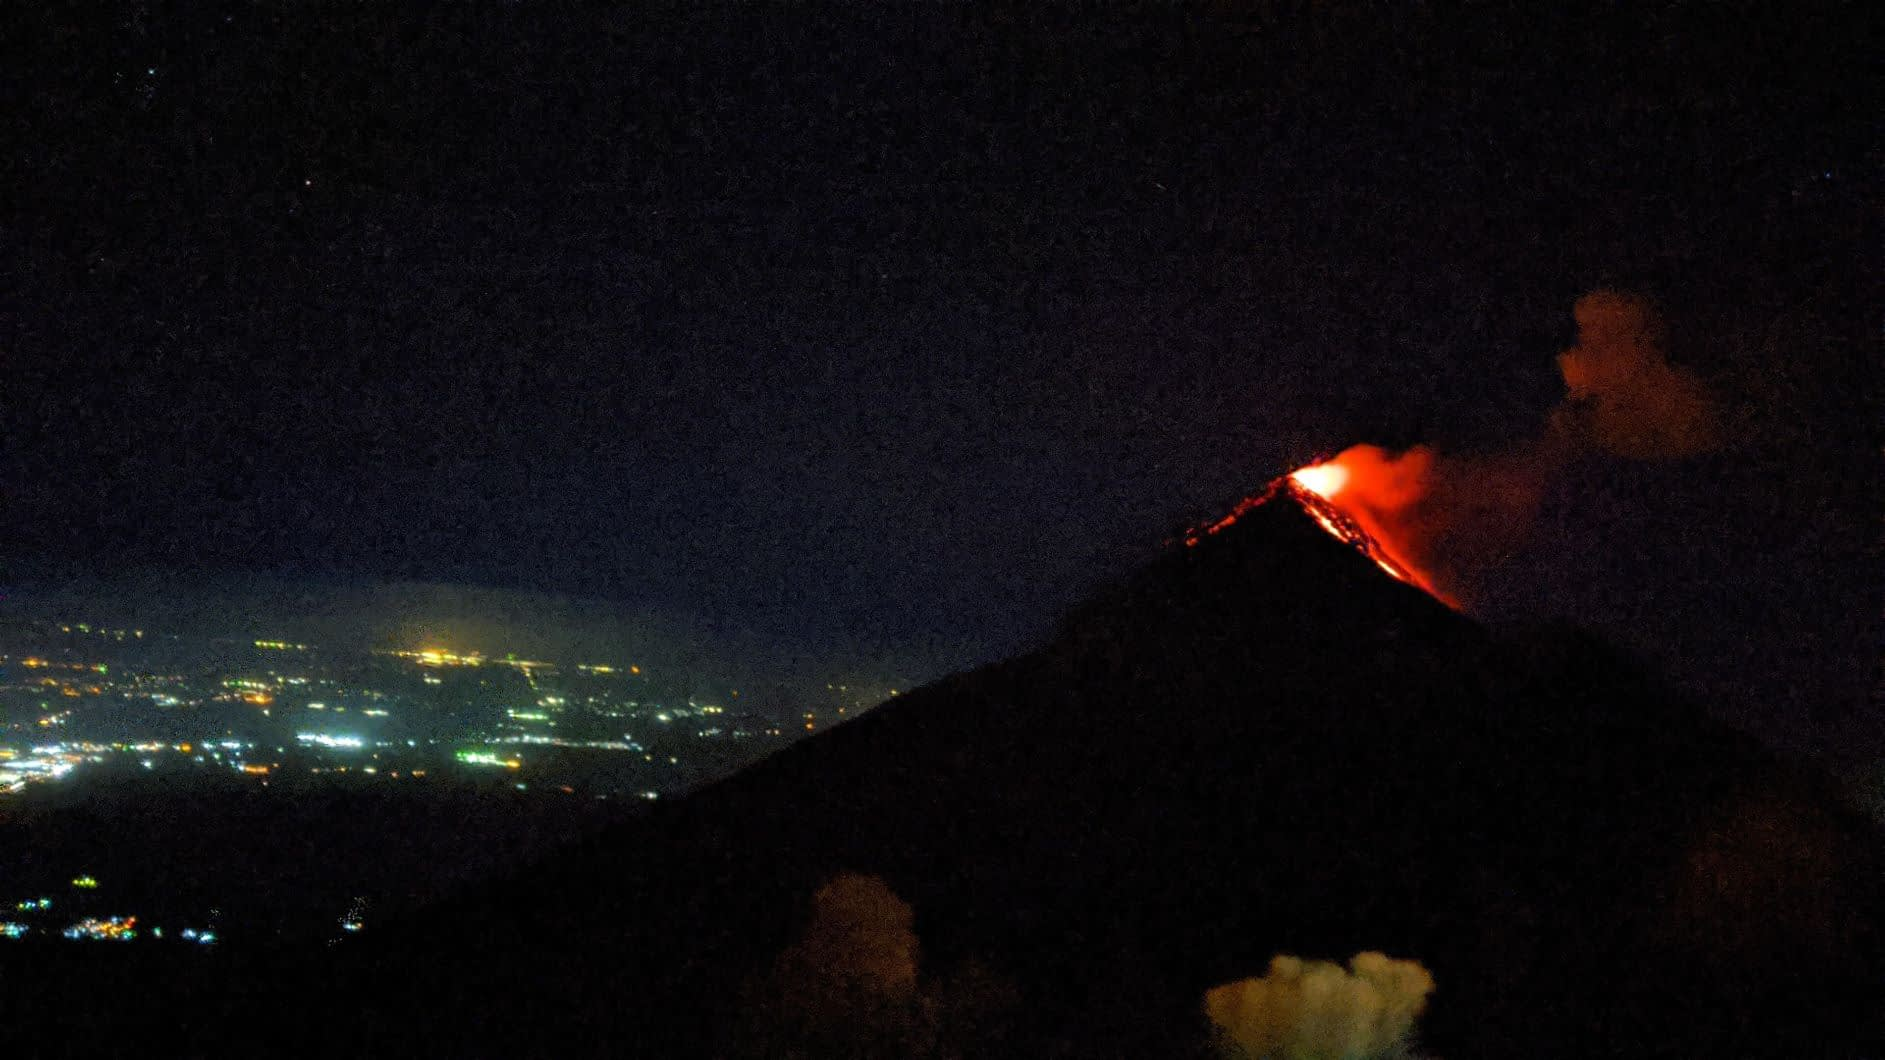 Fuego spewing lava view from acatenango volcano at night